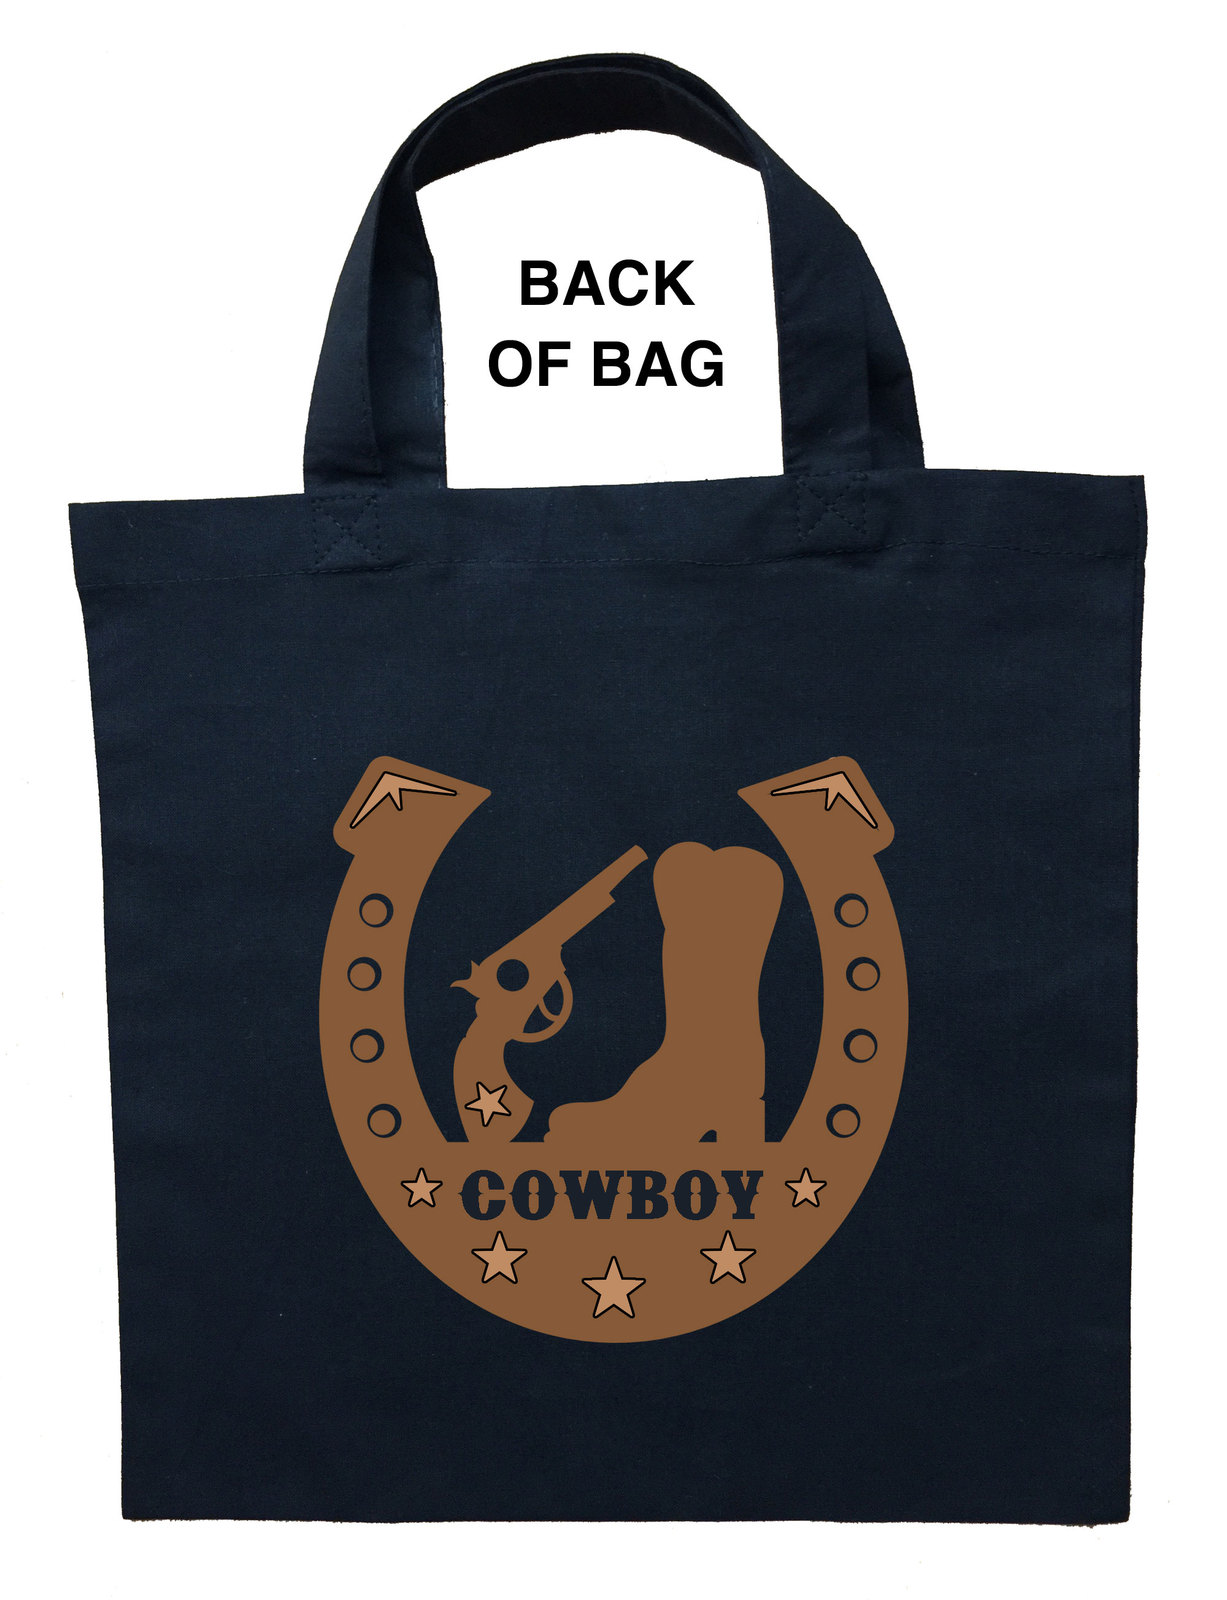 Cowboy Trick or Treat Bag, Personalized Cowboy Halloween Loot Bag, Cowboy Bag